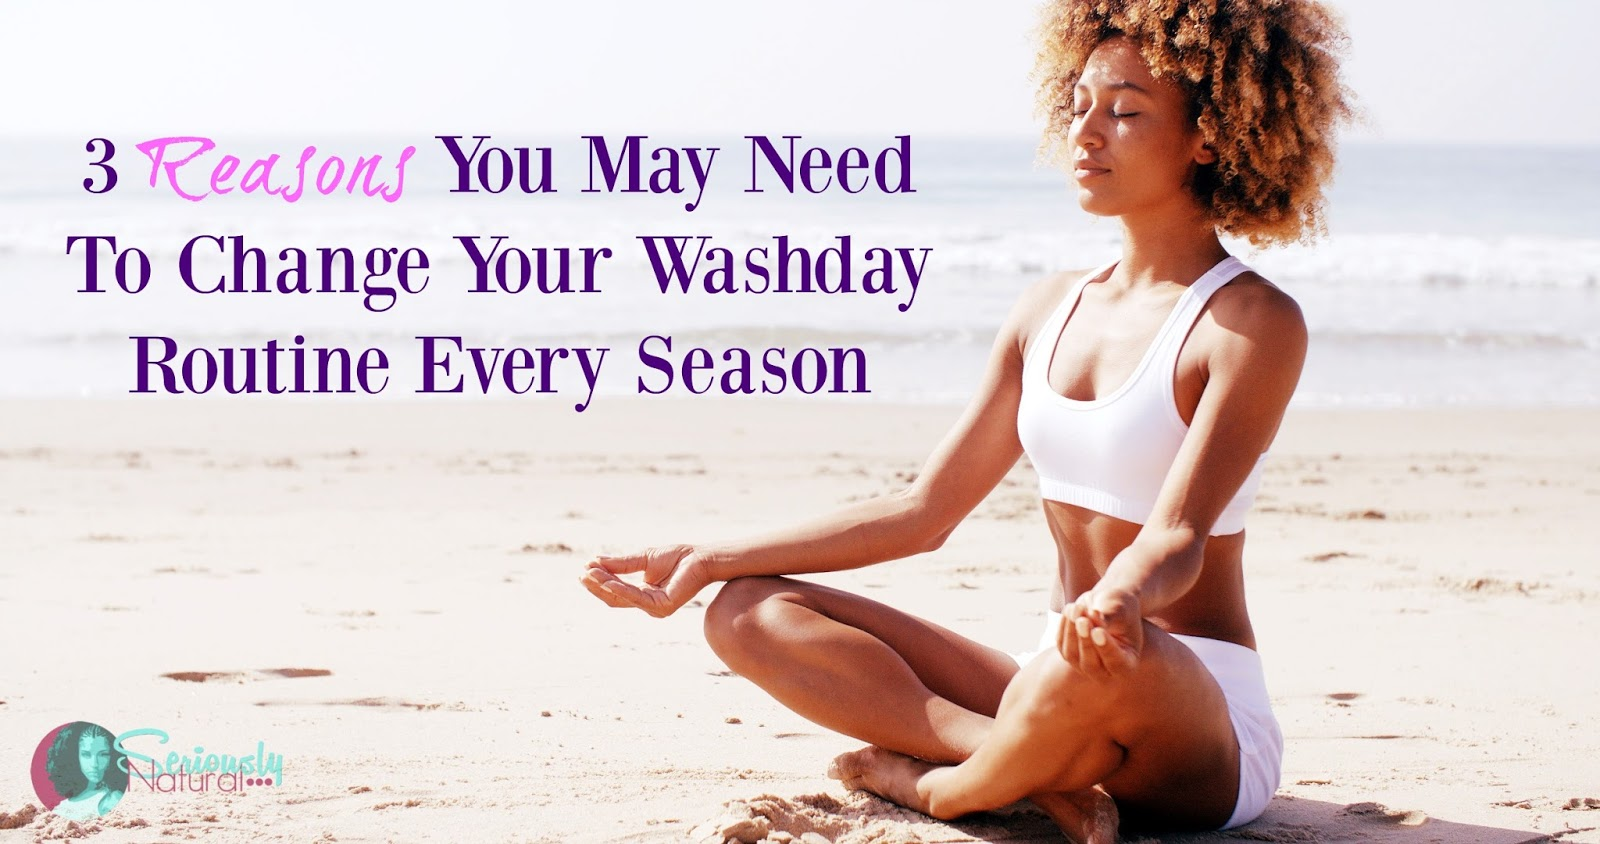 3 Reasons You May Need To Change Your Washday Routine Every Season